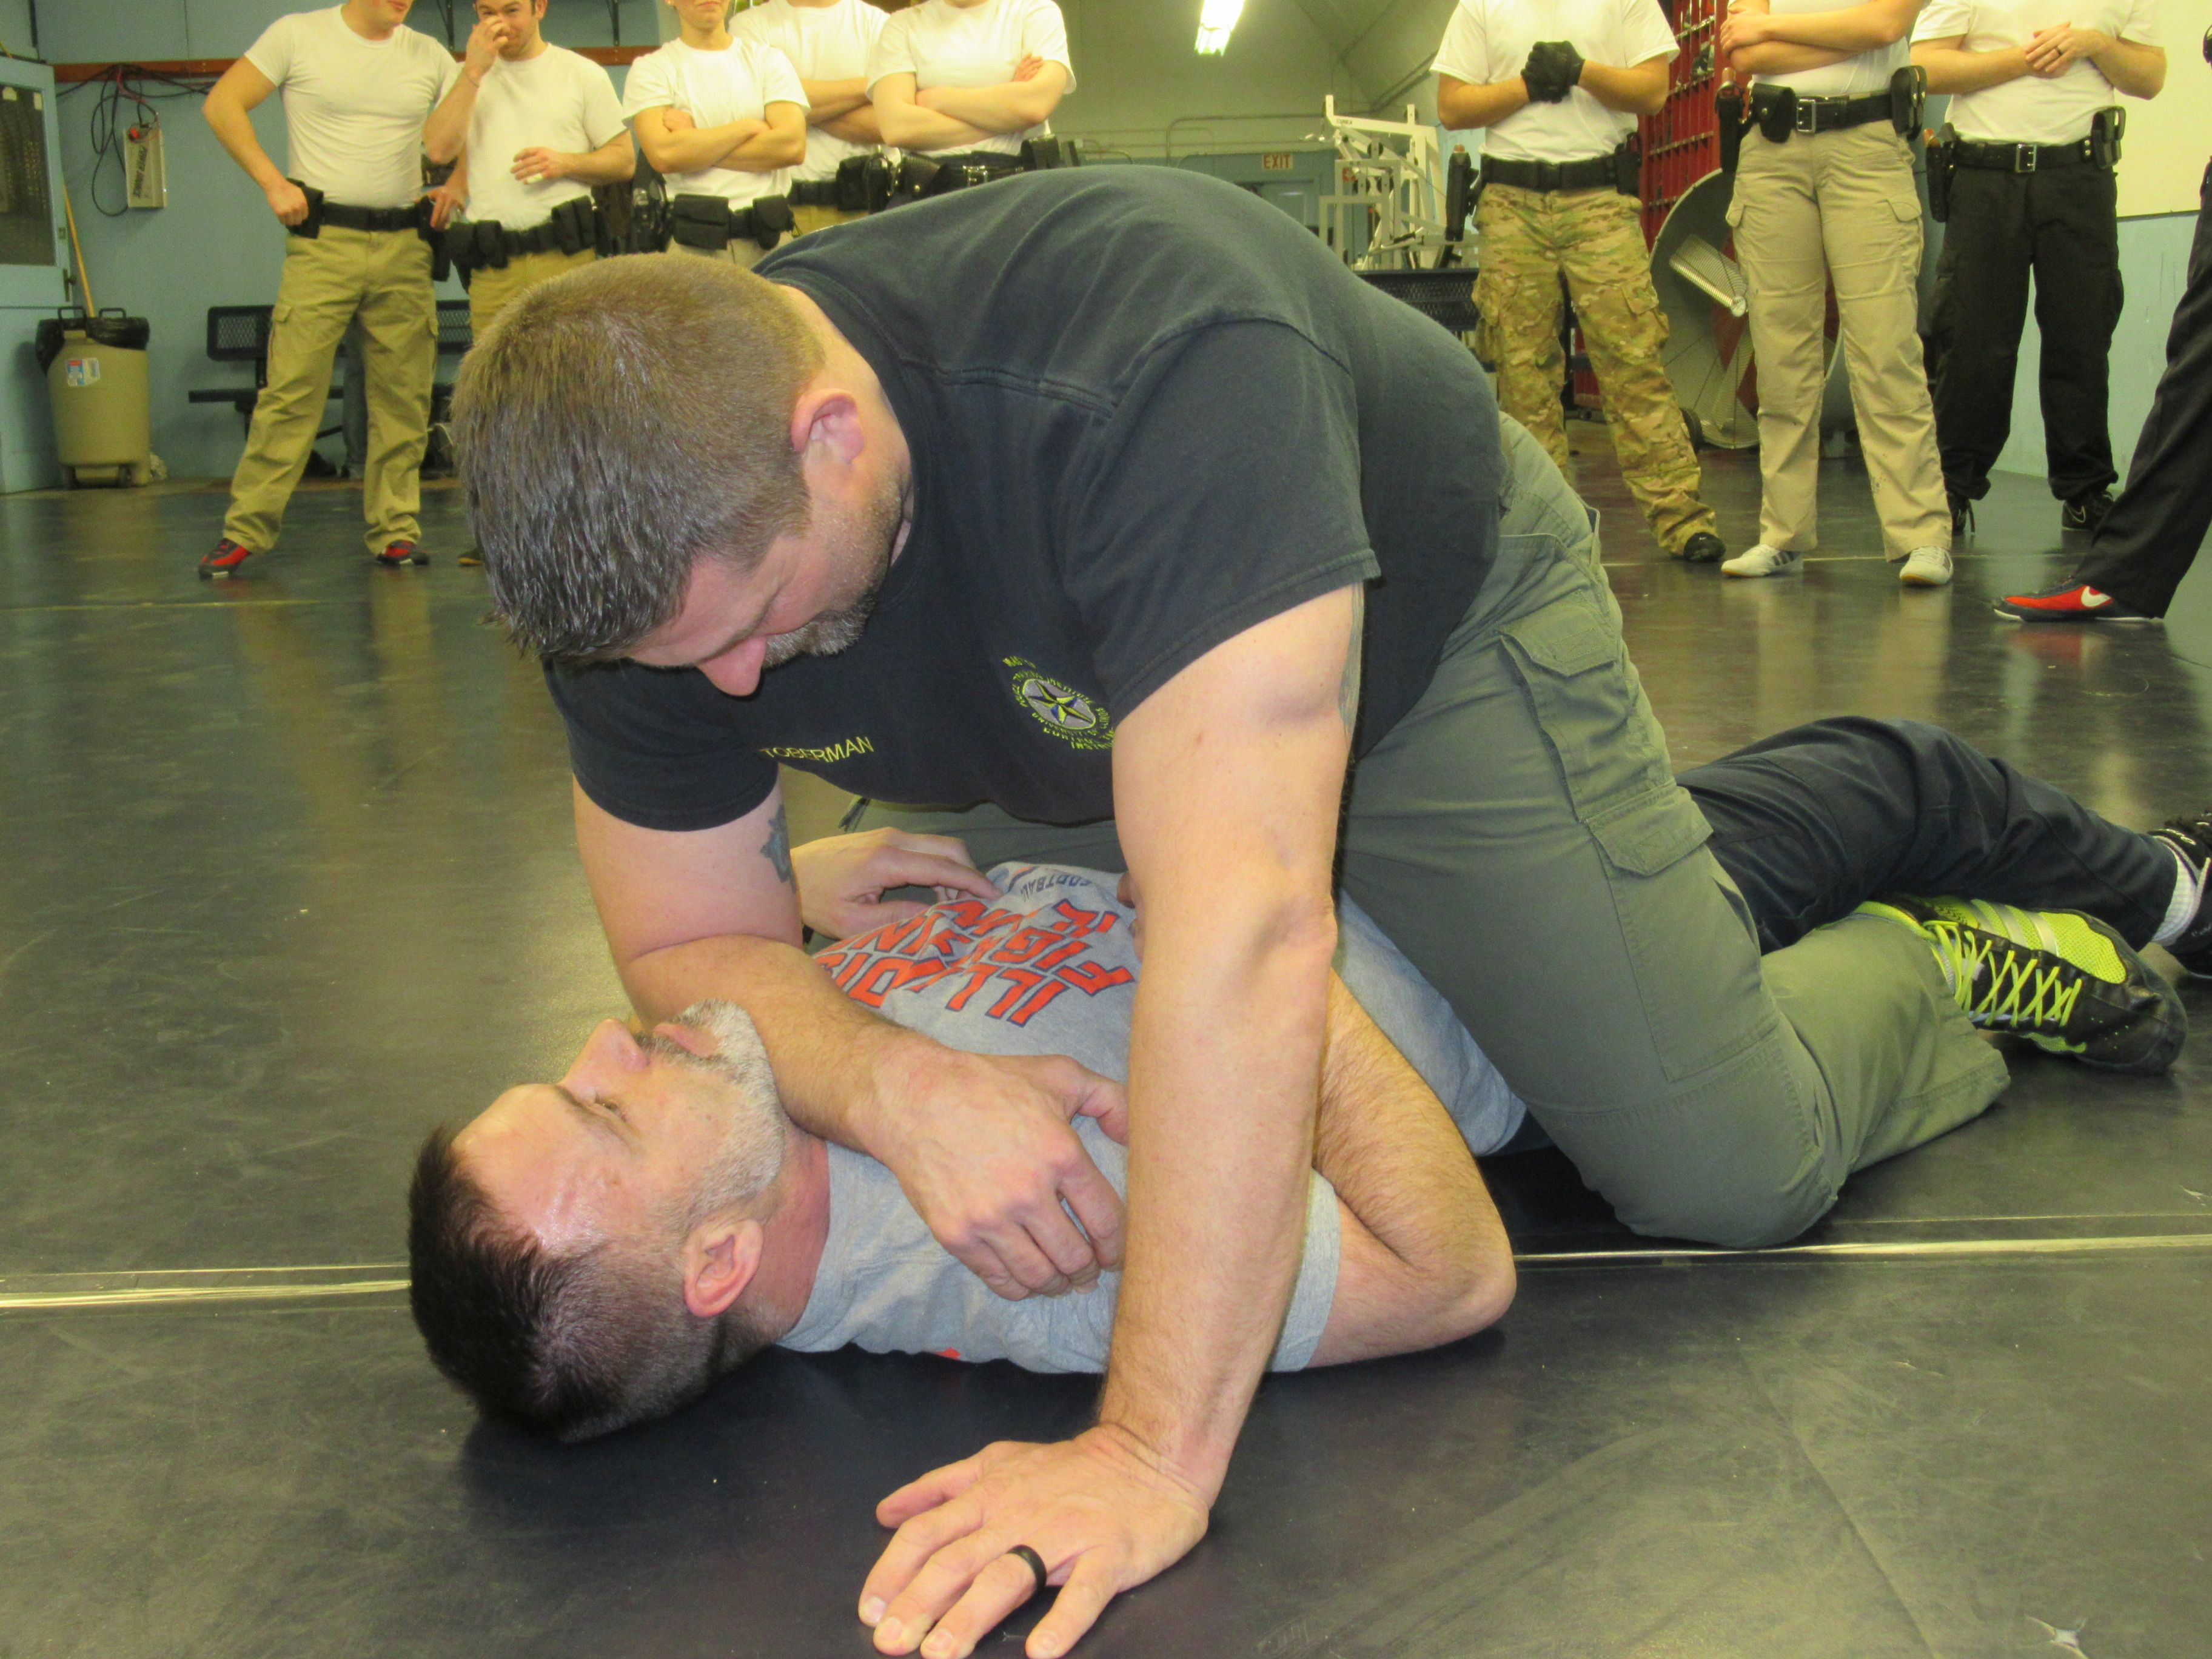 Unlocking the Confusion Around Chokeholds